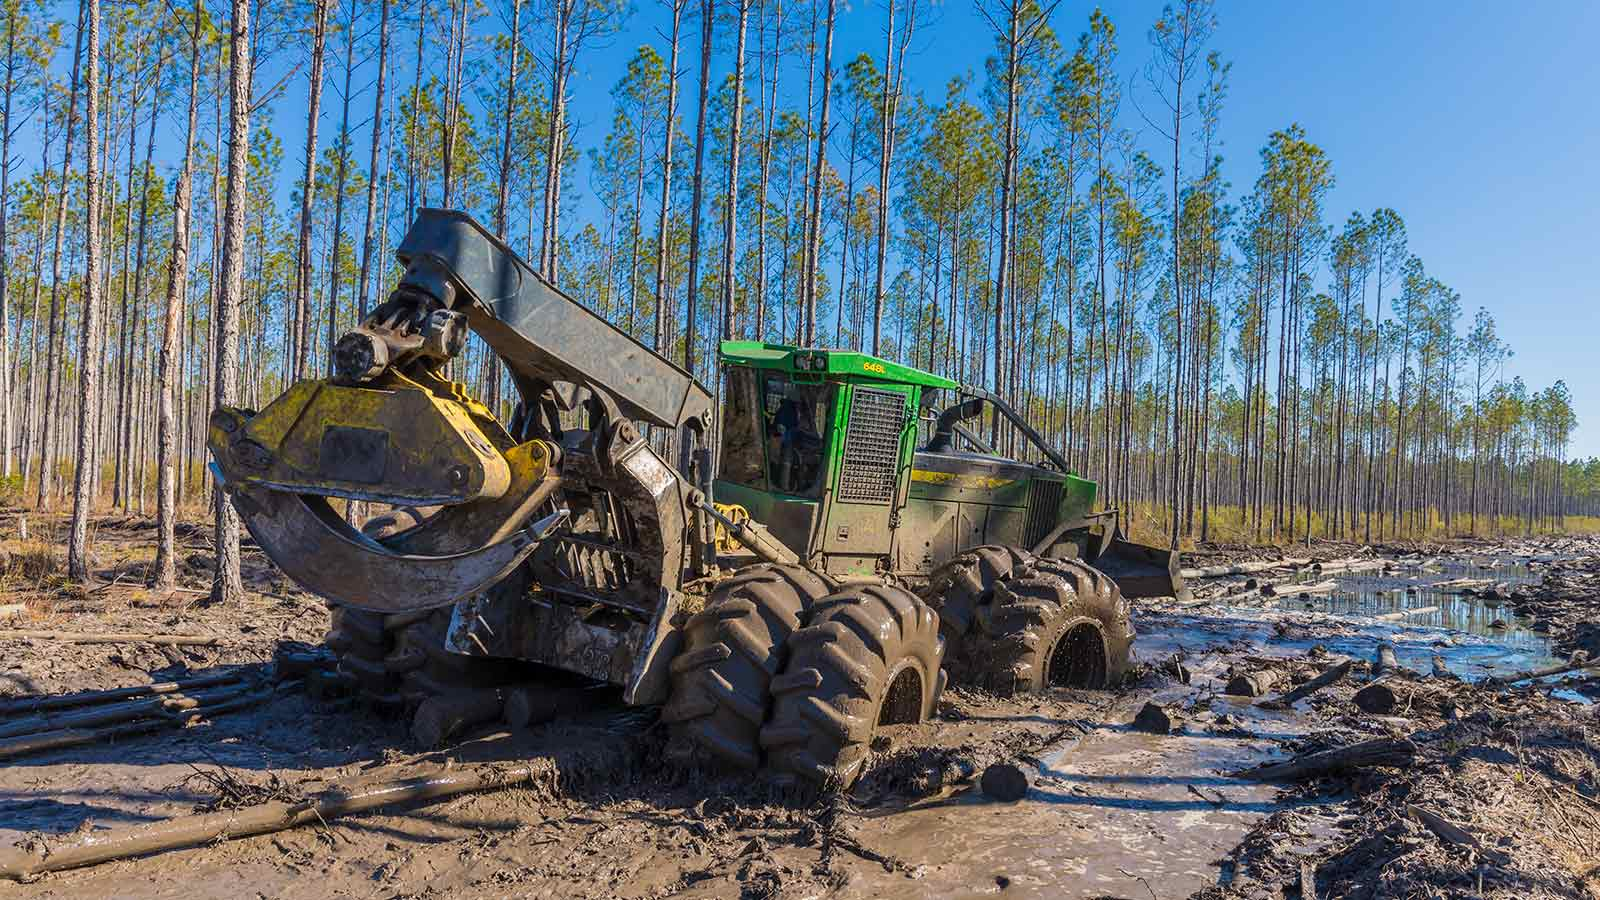 A John Deere 648L Skidder drives through a swampy landscape in the forest.